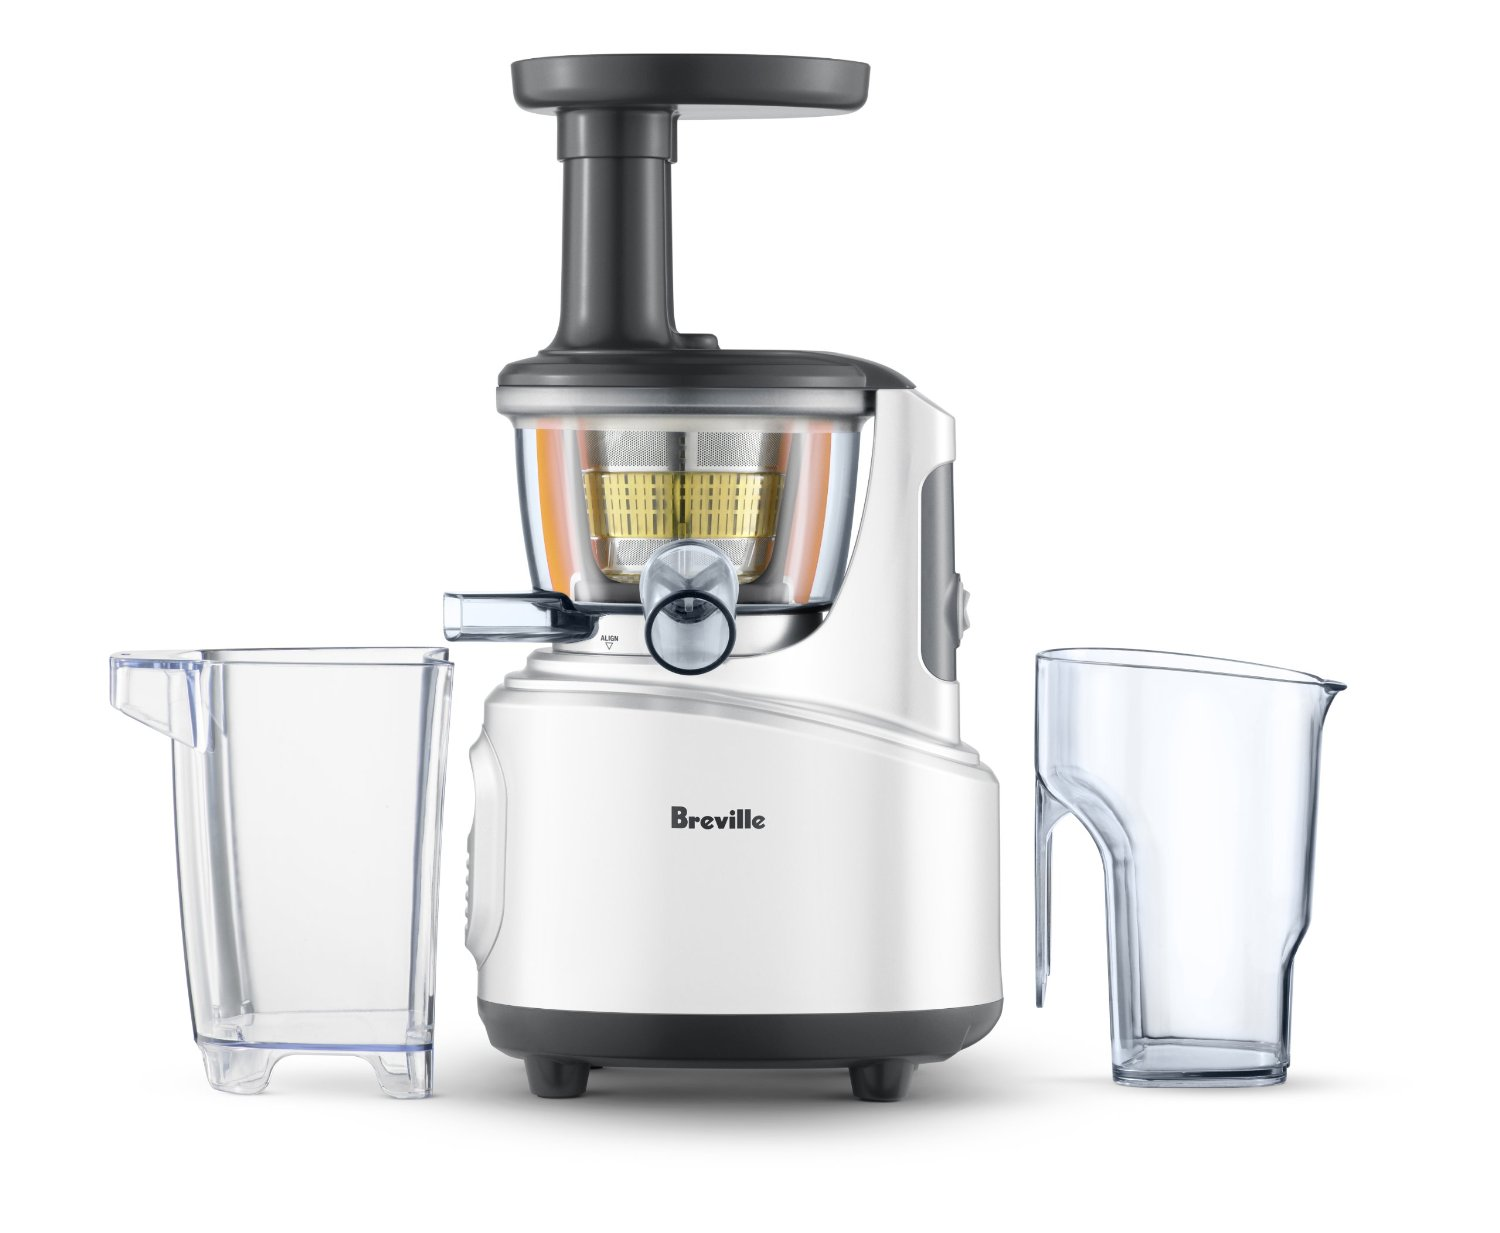 Slow Juicer Bedst I Test 2016 : Best Masticating Juicer - Guide & Reviews